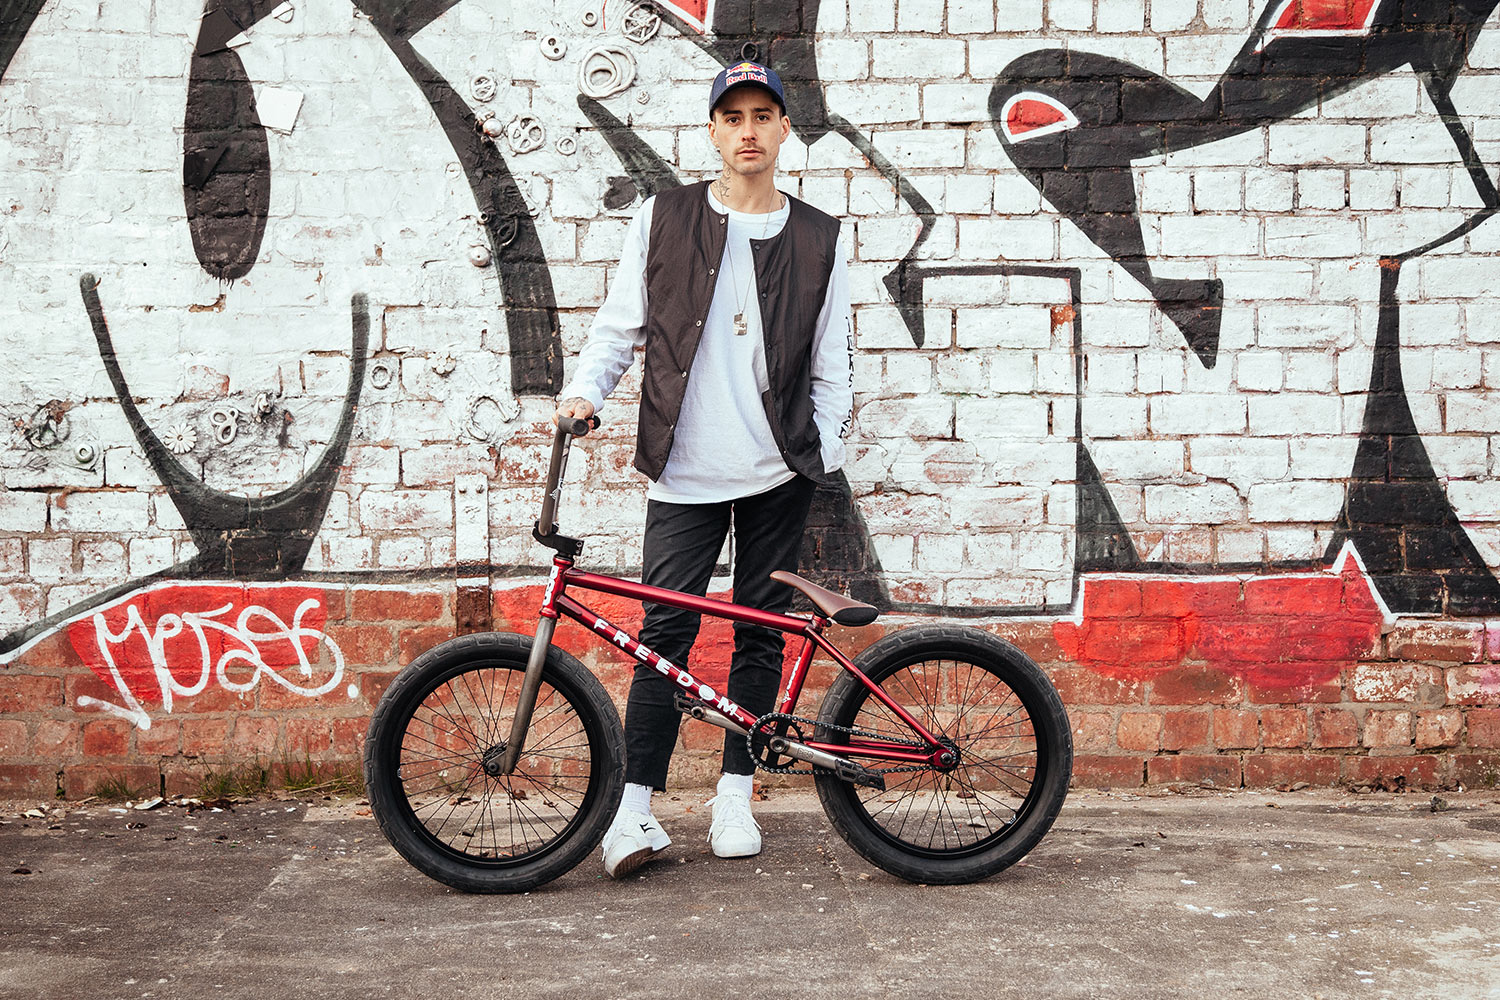 Kriss and his Freedom frame setup.